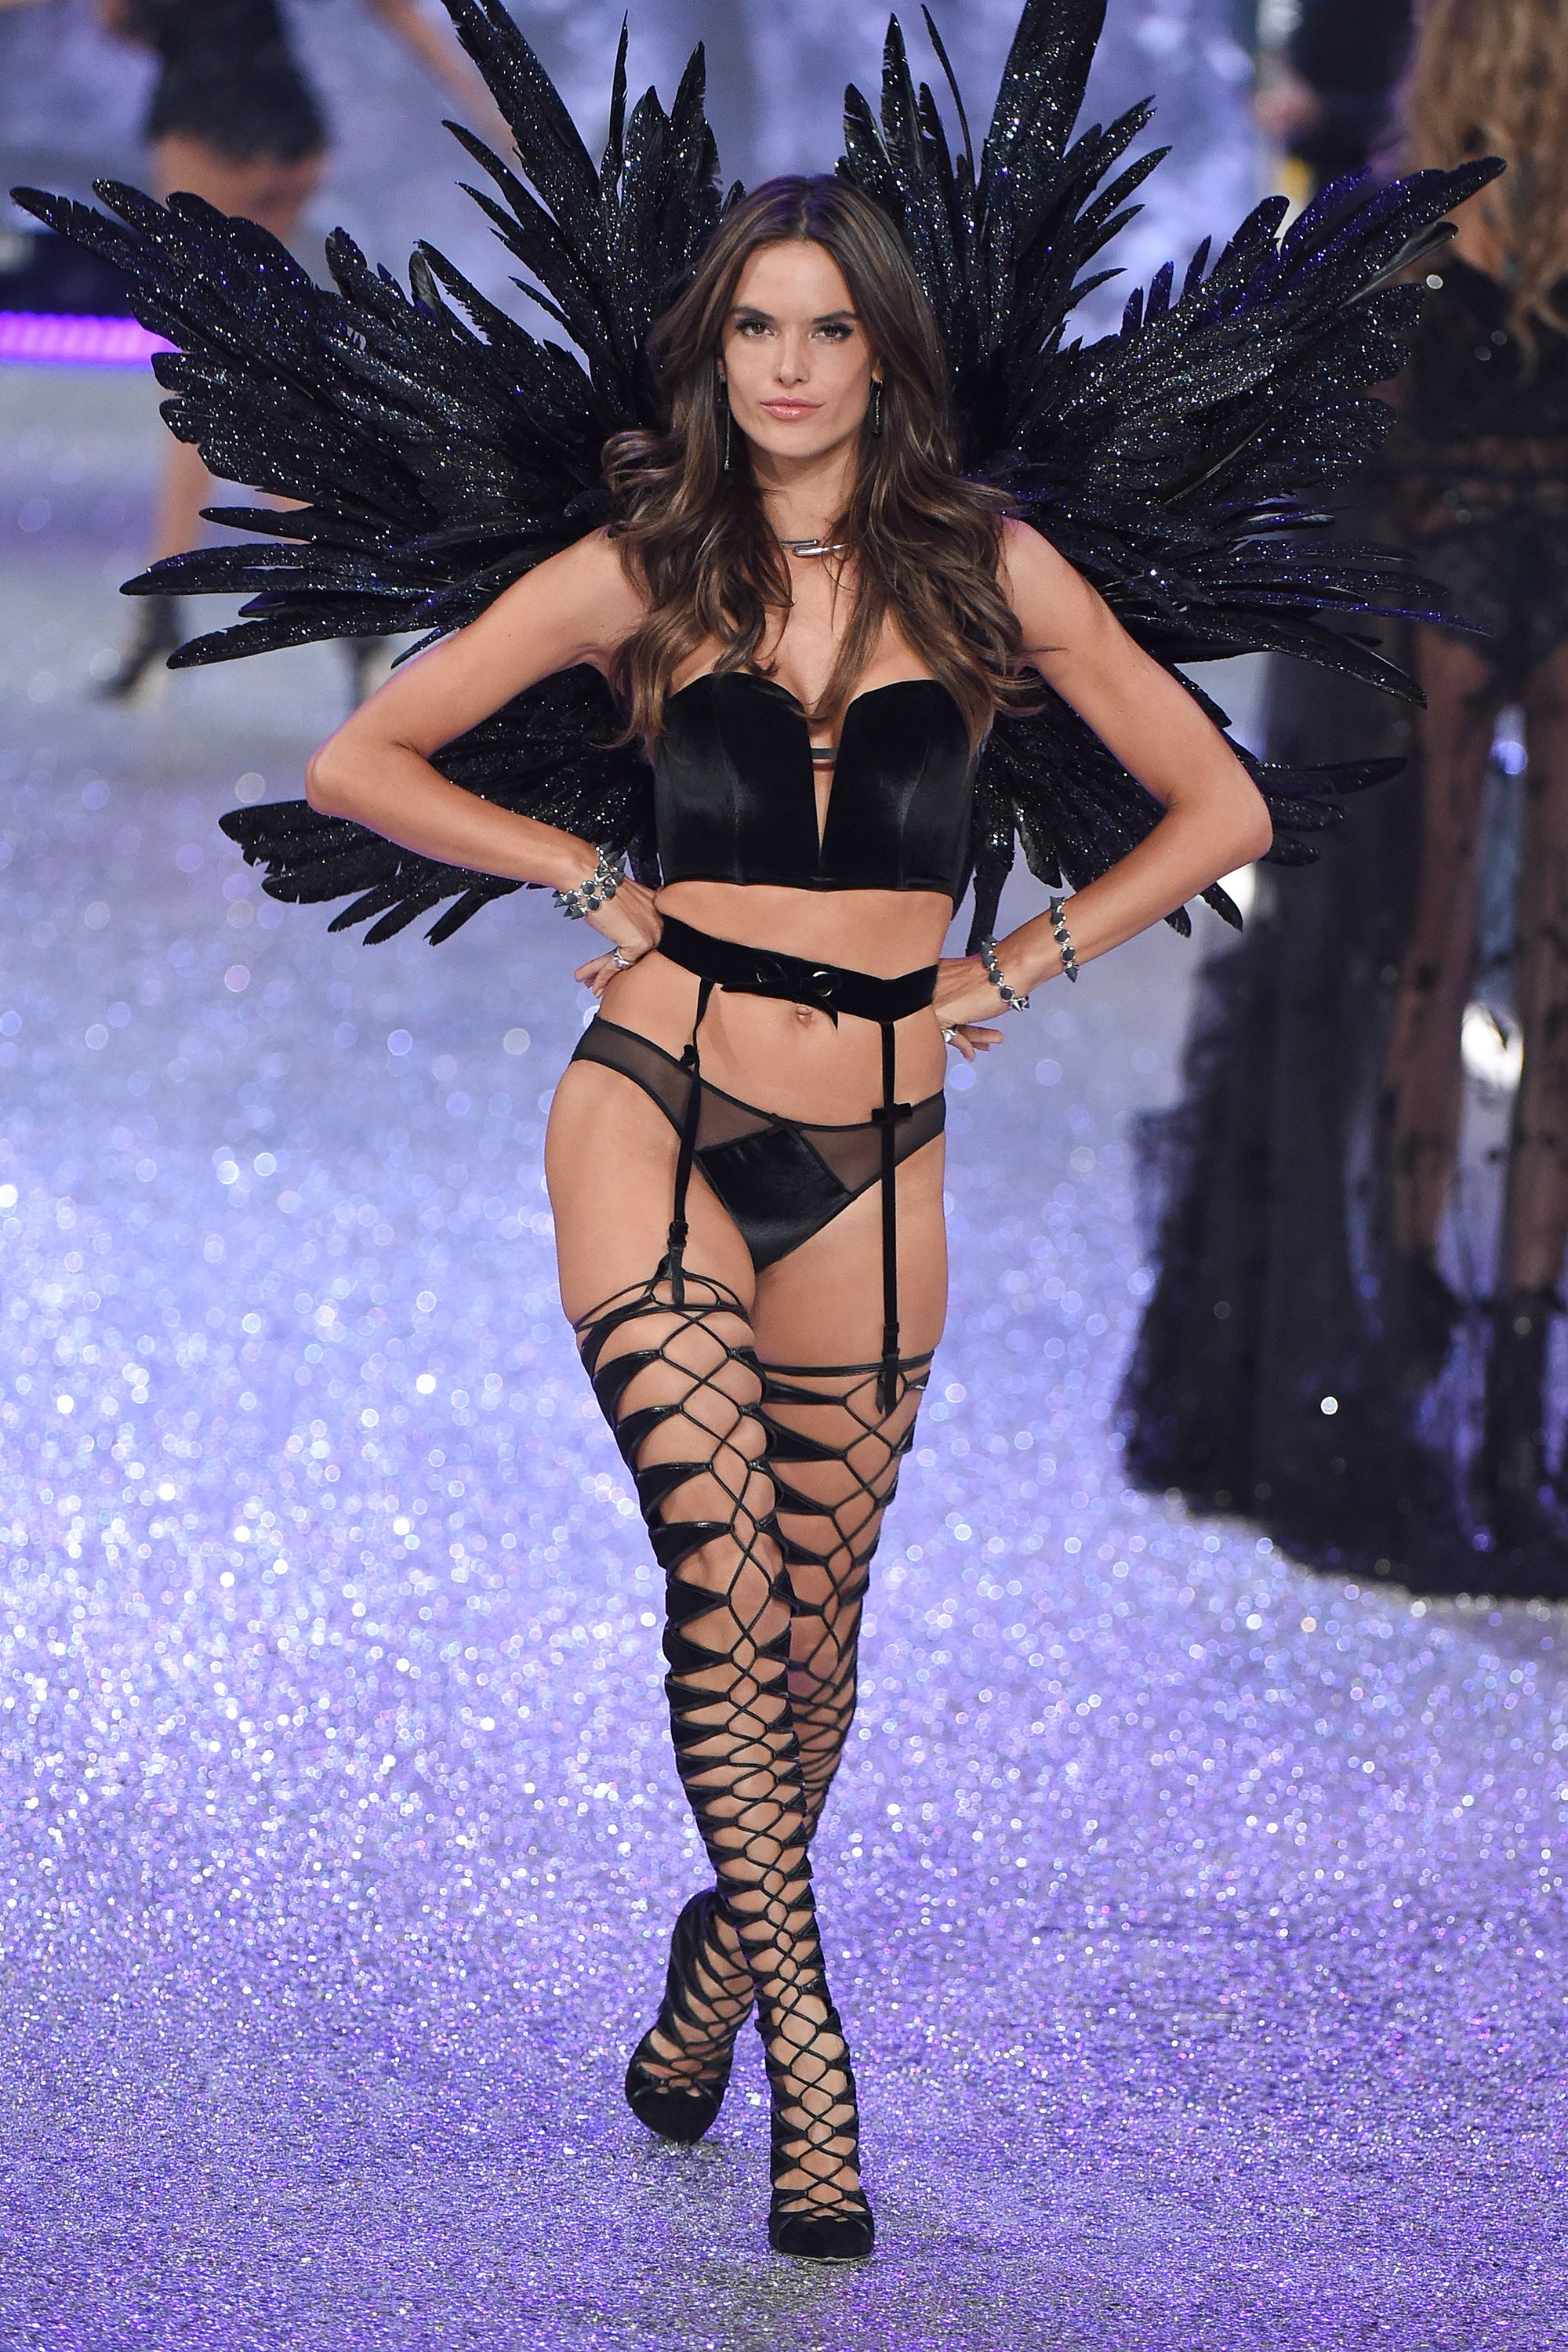 23a62ef210 Alessandra Ambrosio s Best Victoria s Secret Fashion Show Looks - Alessandra  Ambrosio s Last VS Fashion Show